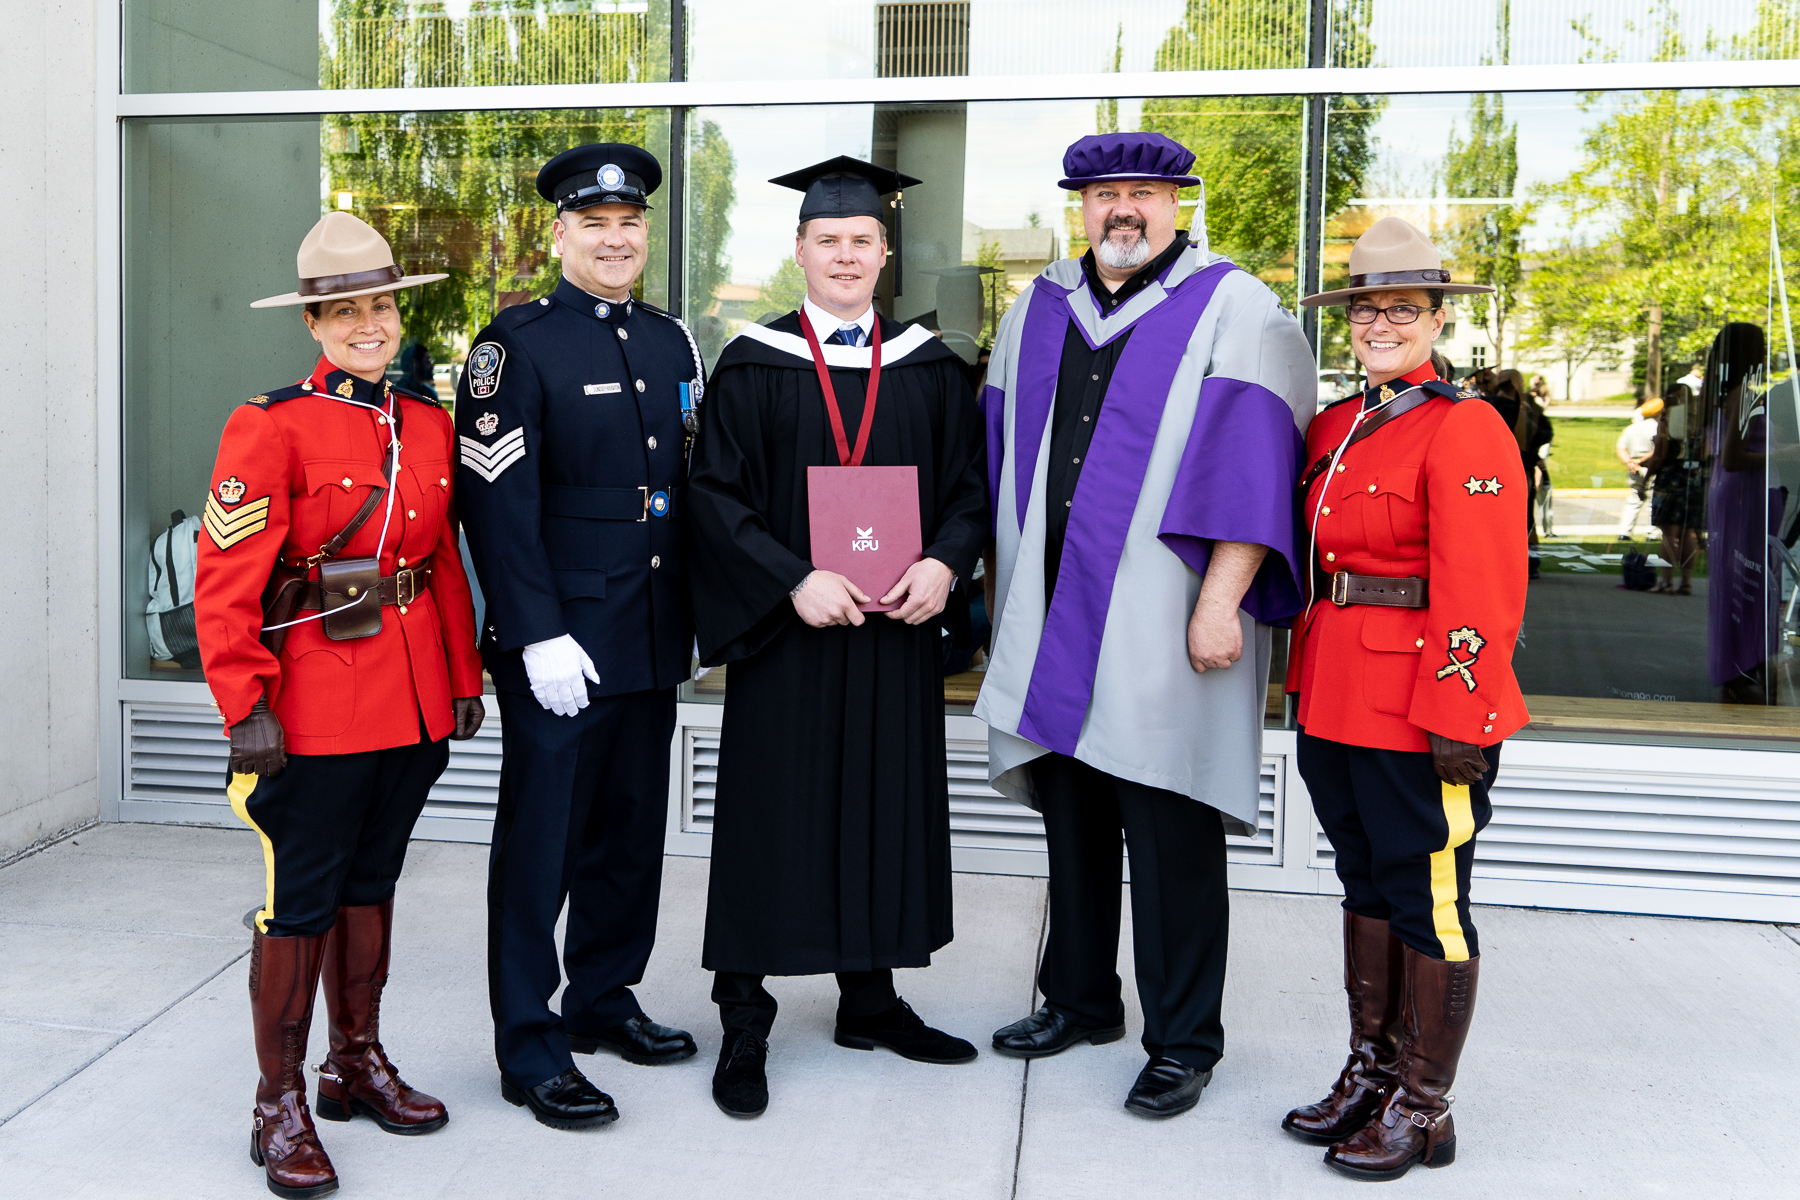 Jordan Buna recently graduated from Kwantlen Polytechnic University after overcoming adversity.